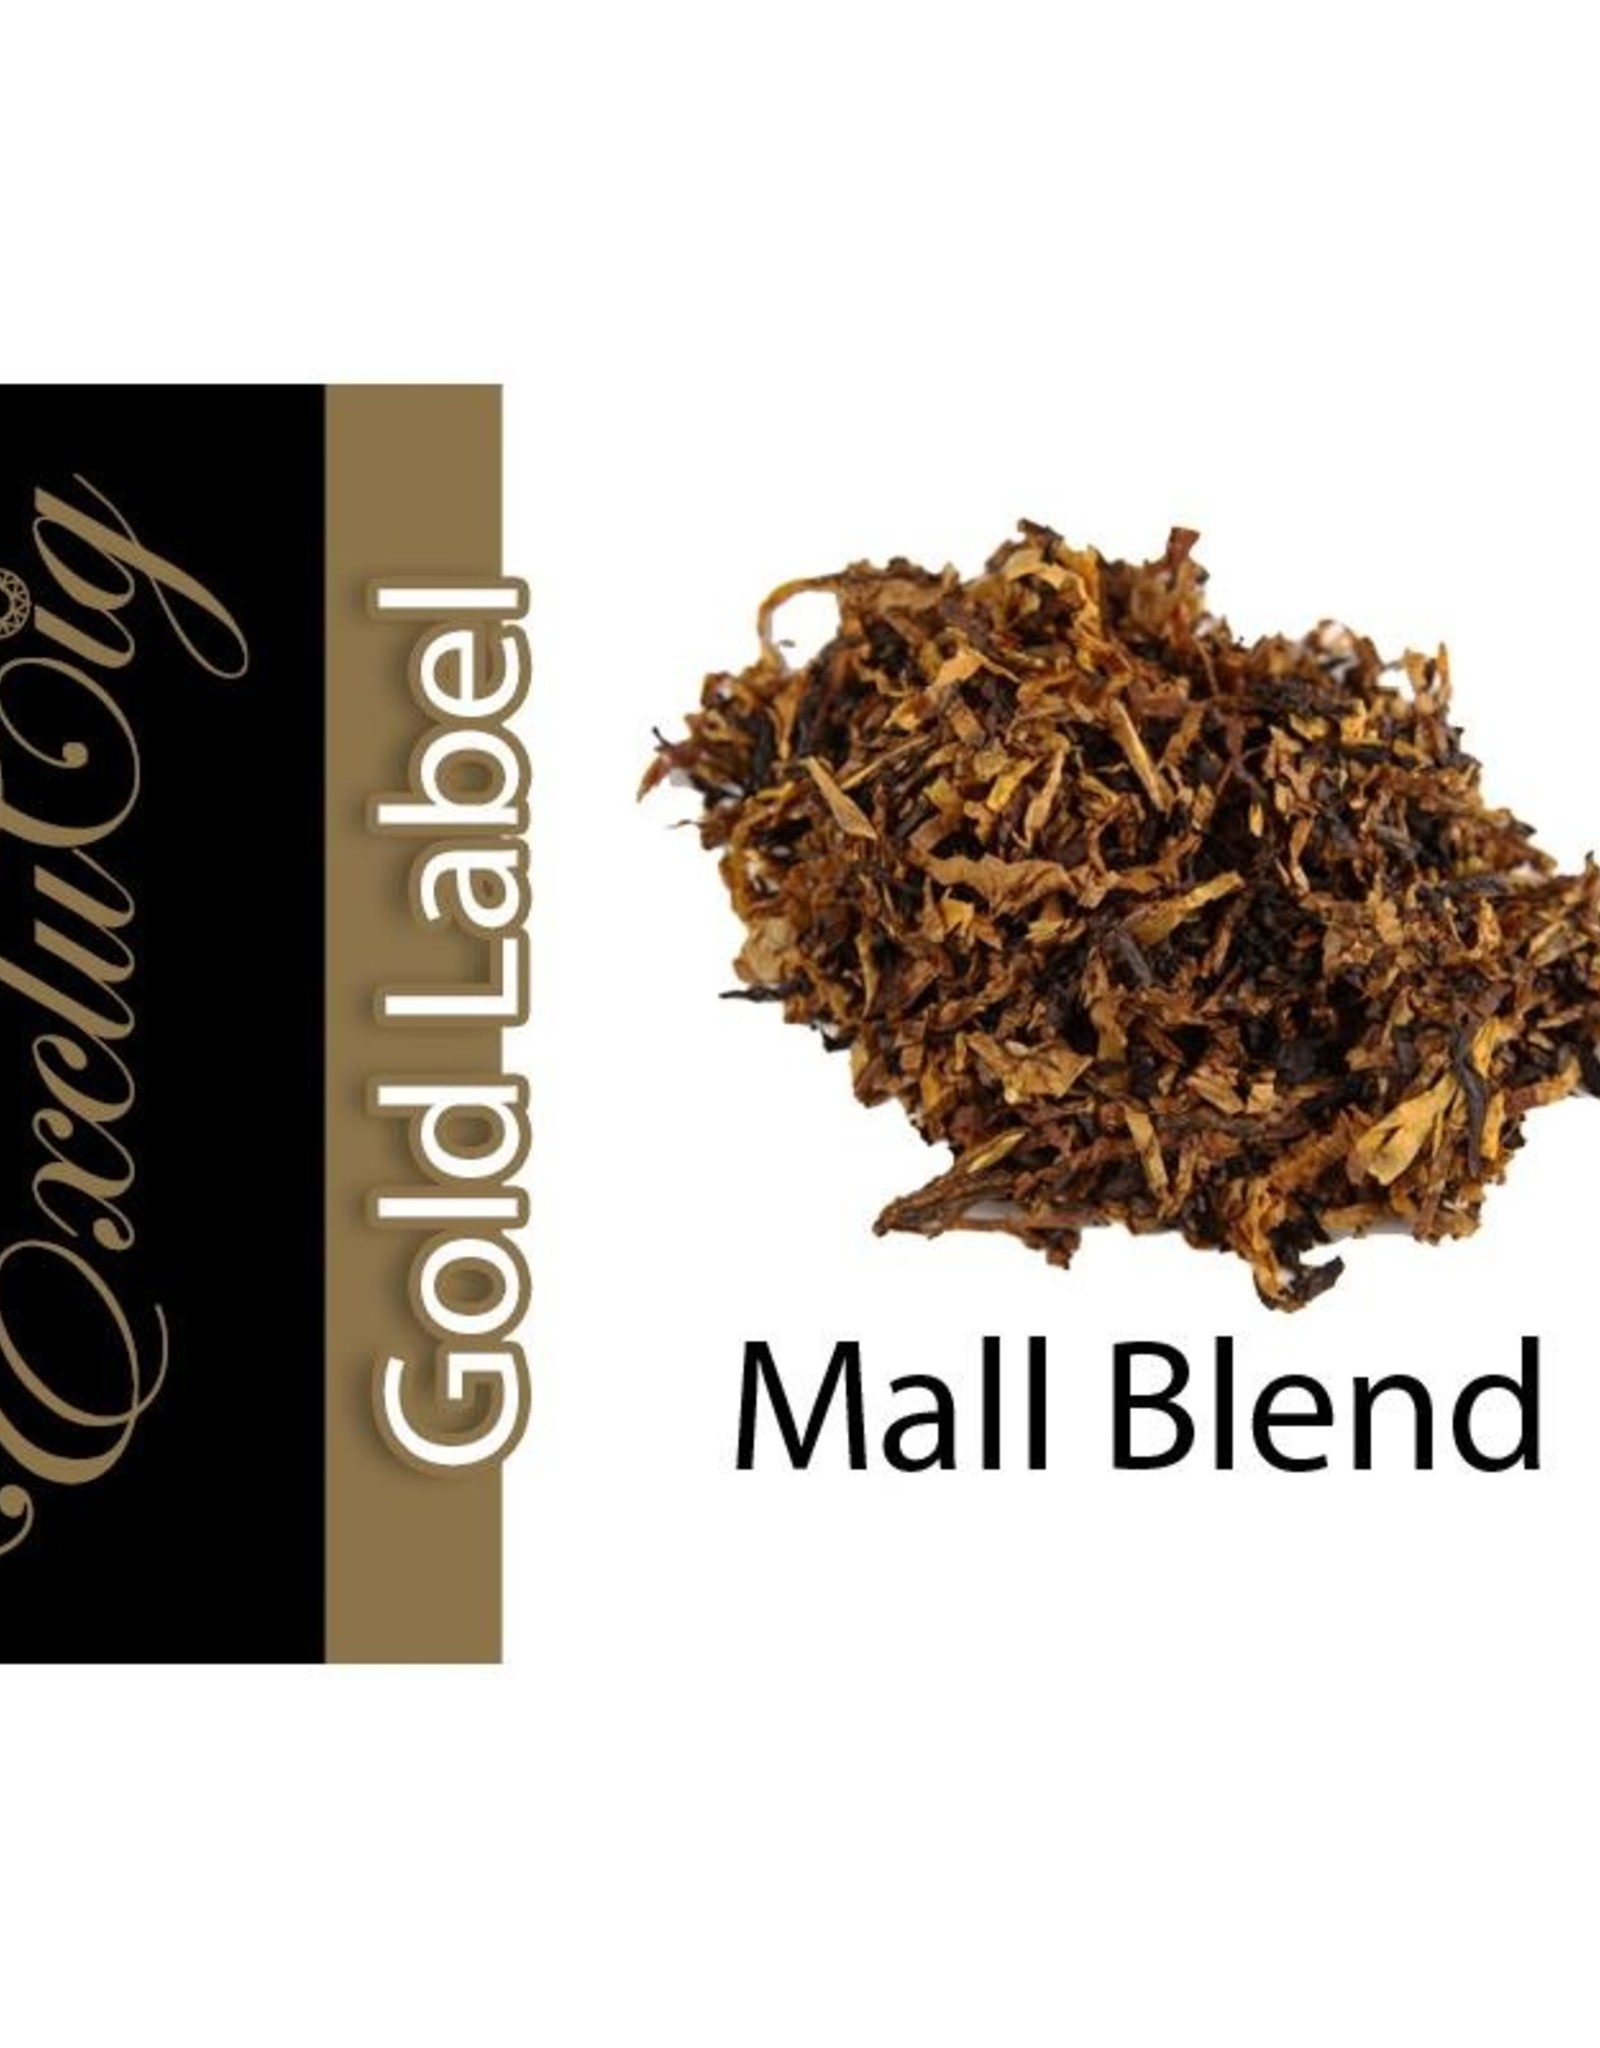 Exclucig Exclucig Gold Label E-liquid Mall Blend 3 mg Nicotine